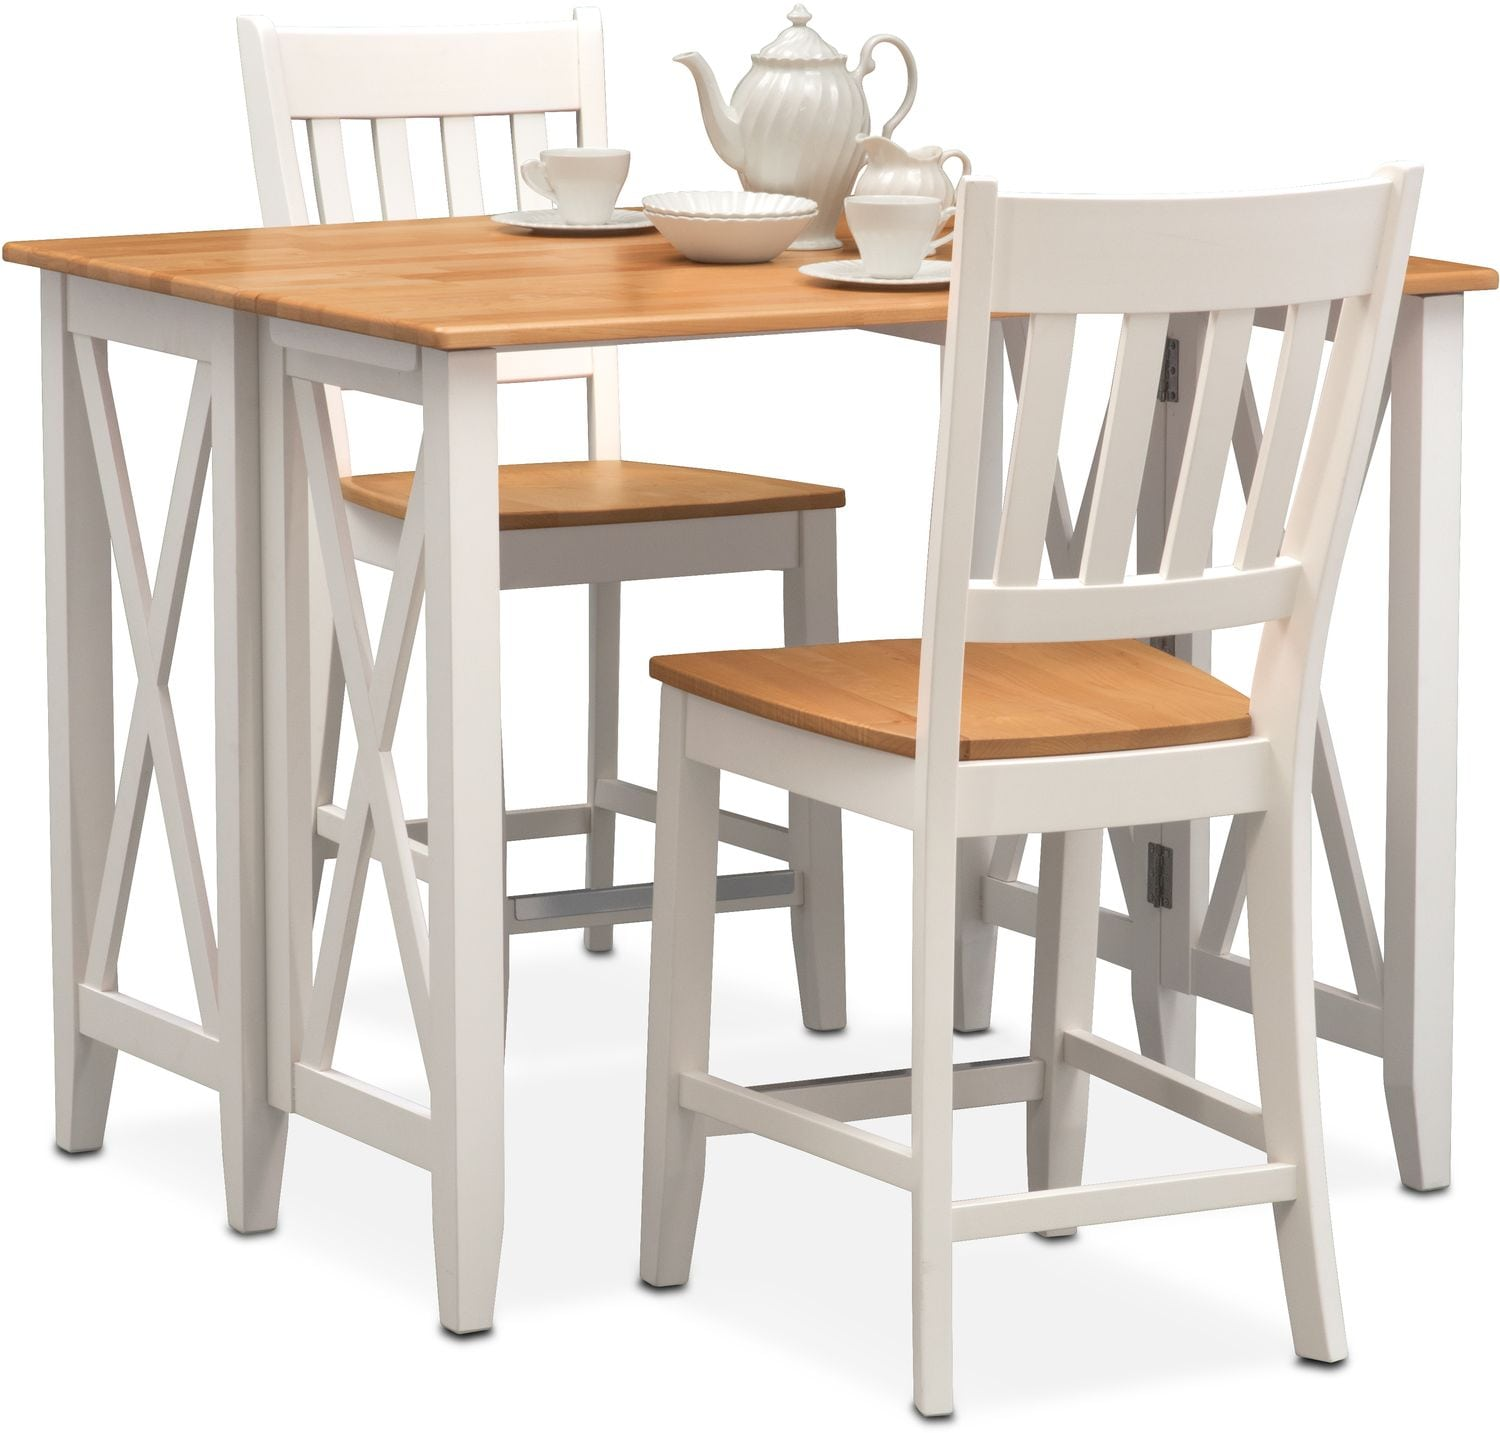 Nantucket Breakfast Bar And 2 Counter Height Slat Back Chairs Maple And Whi